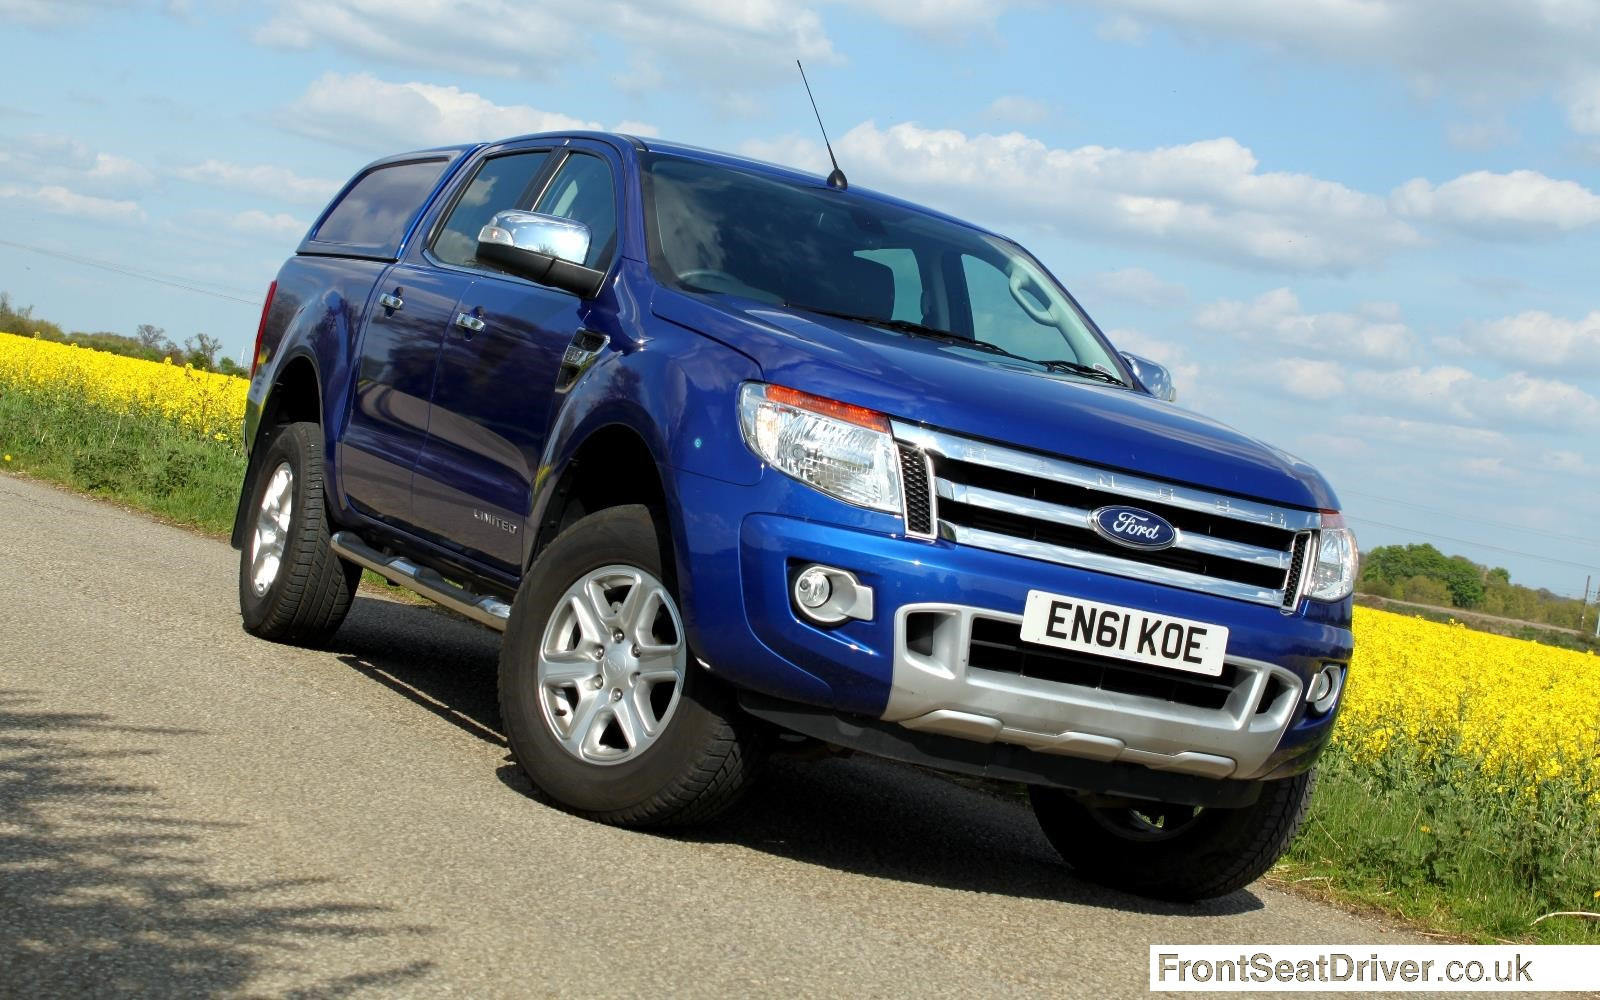 ford ranger 2014 phil huff front seat driver. Black Bedroom Furniture Sets. Home Design Ideas